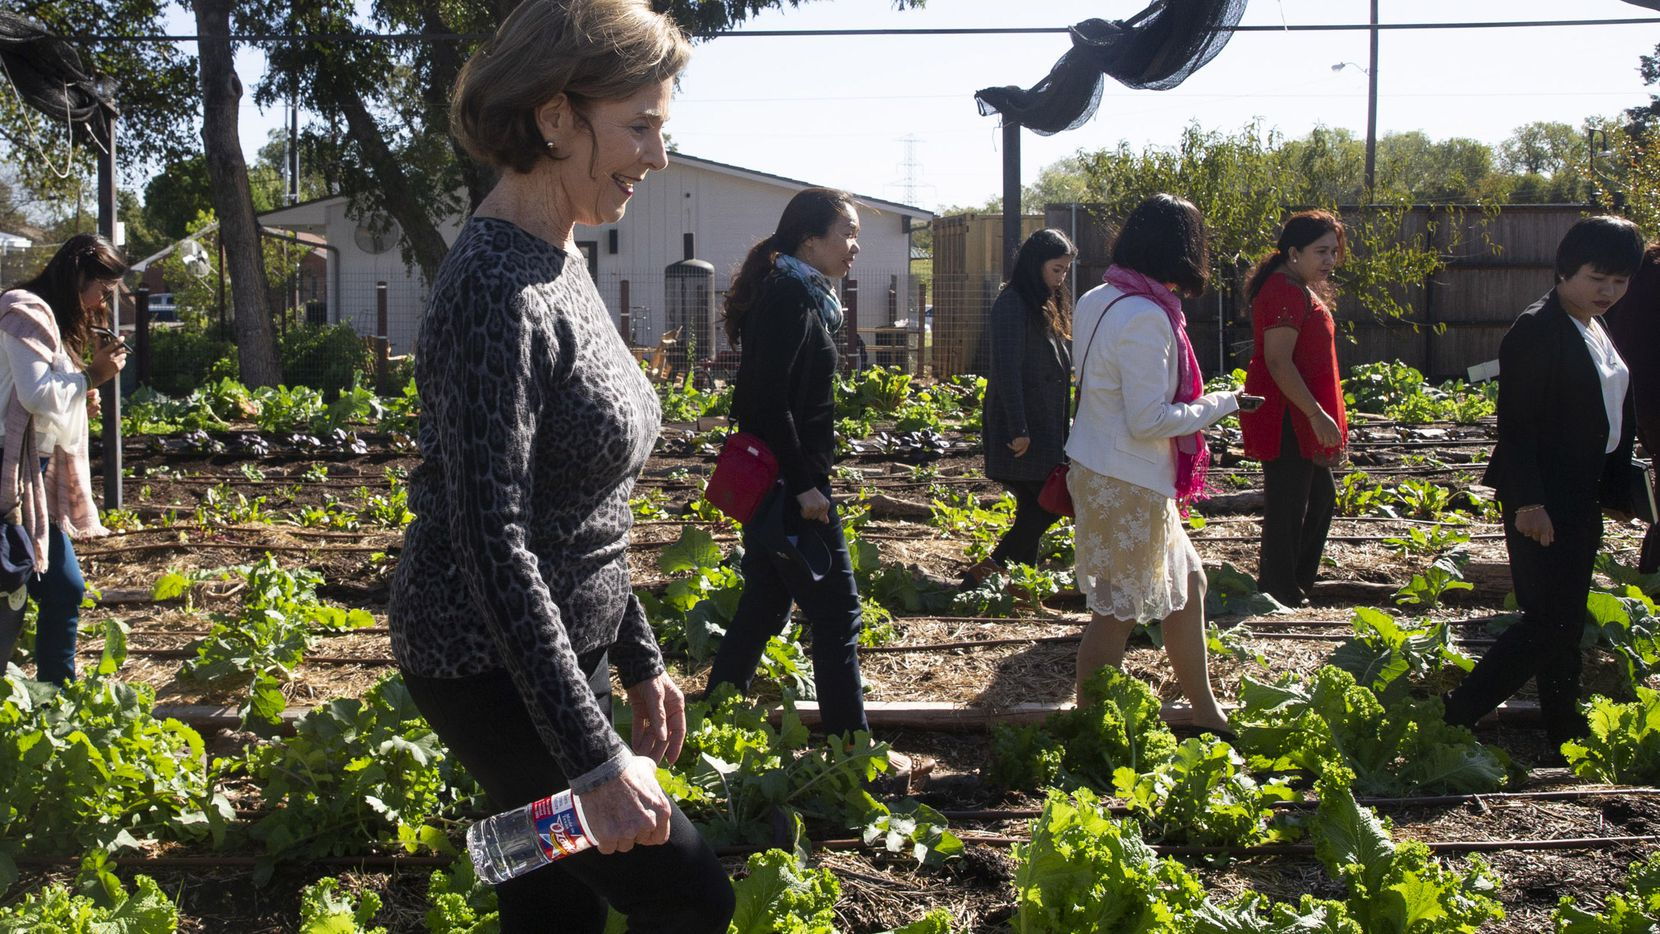 Former First Lady Laura Bush tours Bonton Farms in south Dallas with Burmese scholars on Oct. 21, 2019. The scholars comprise the fourth class of the Bush Institute Burmese Democracy Advocates for Liberty and Leadership, and they learned about the operating model of Bonton Farms.  (Lynda M. Gonzalez/The Dallas Morning News)